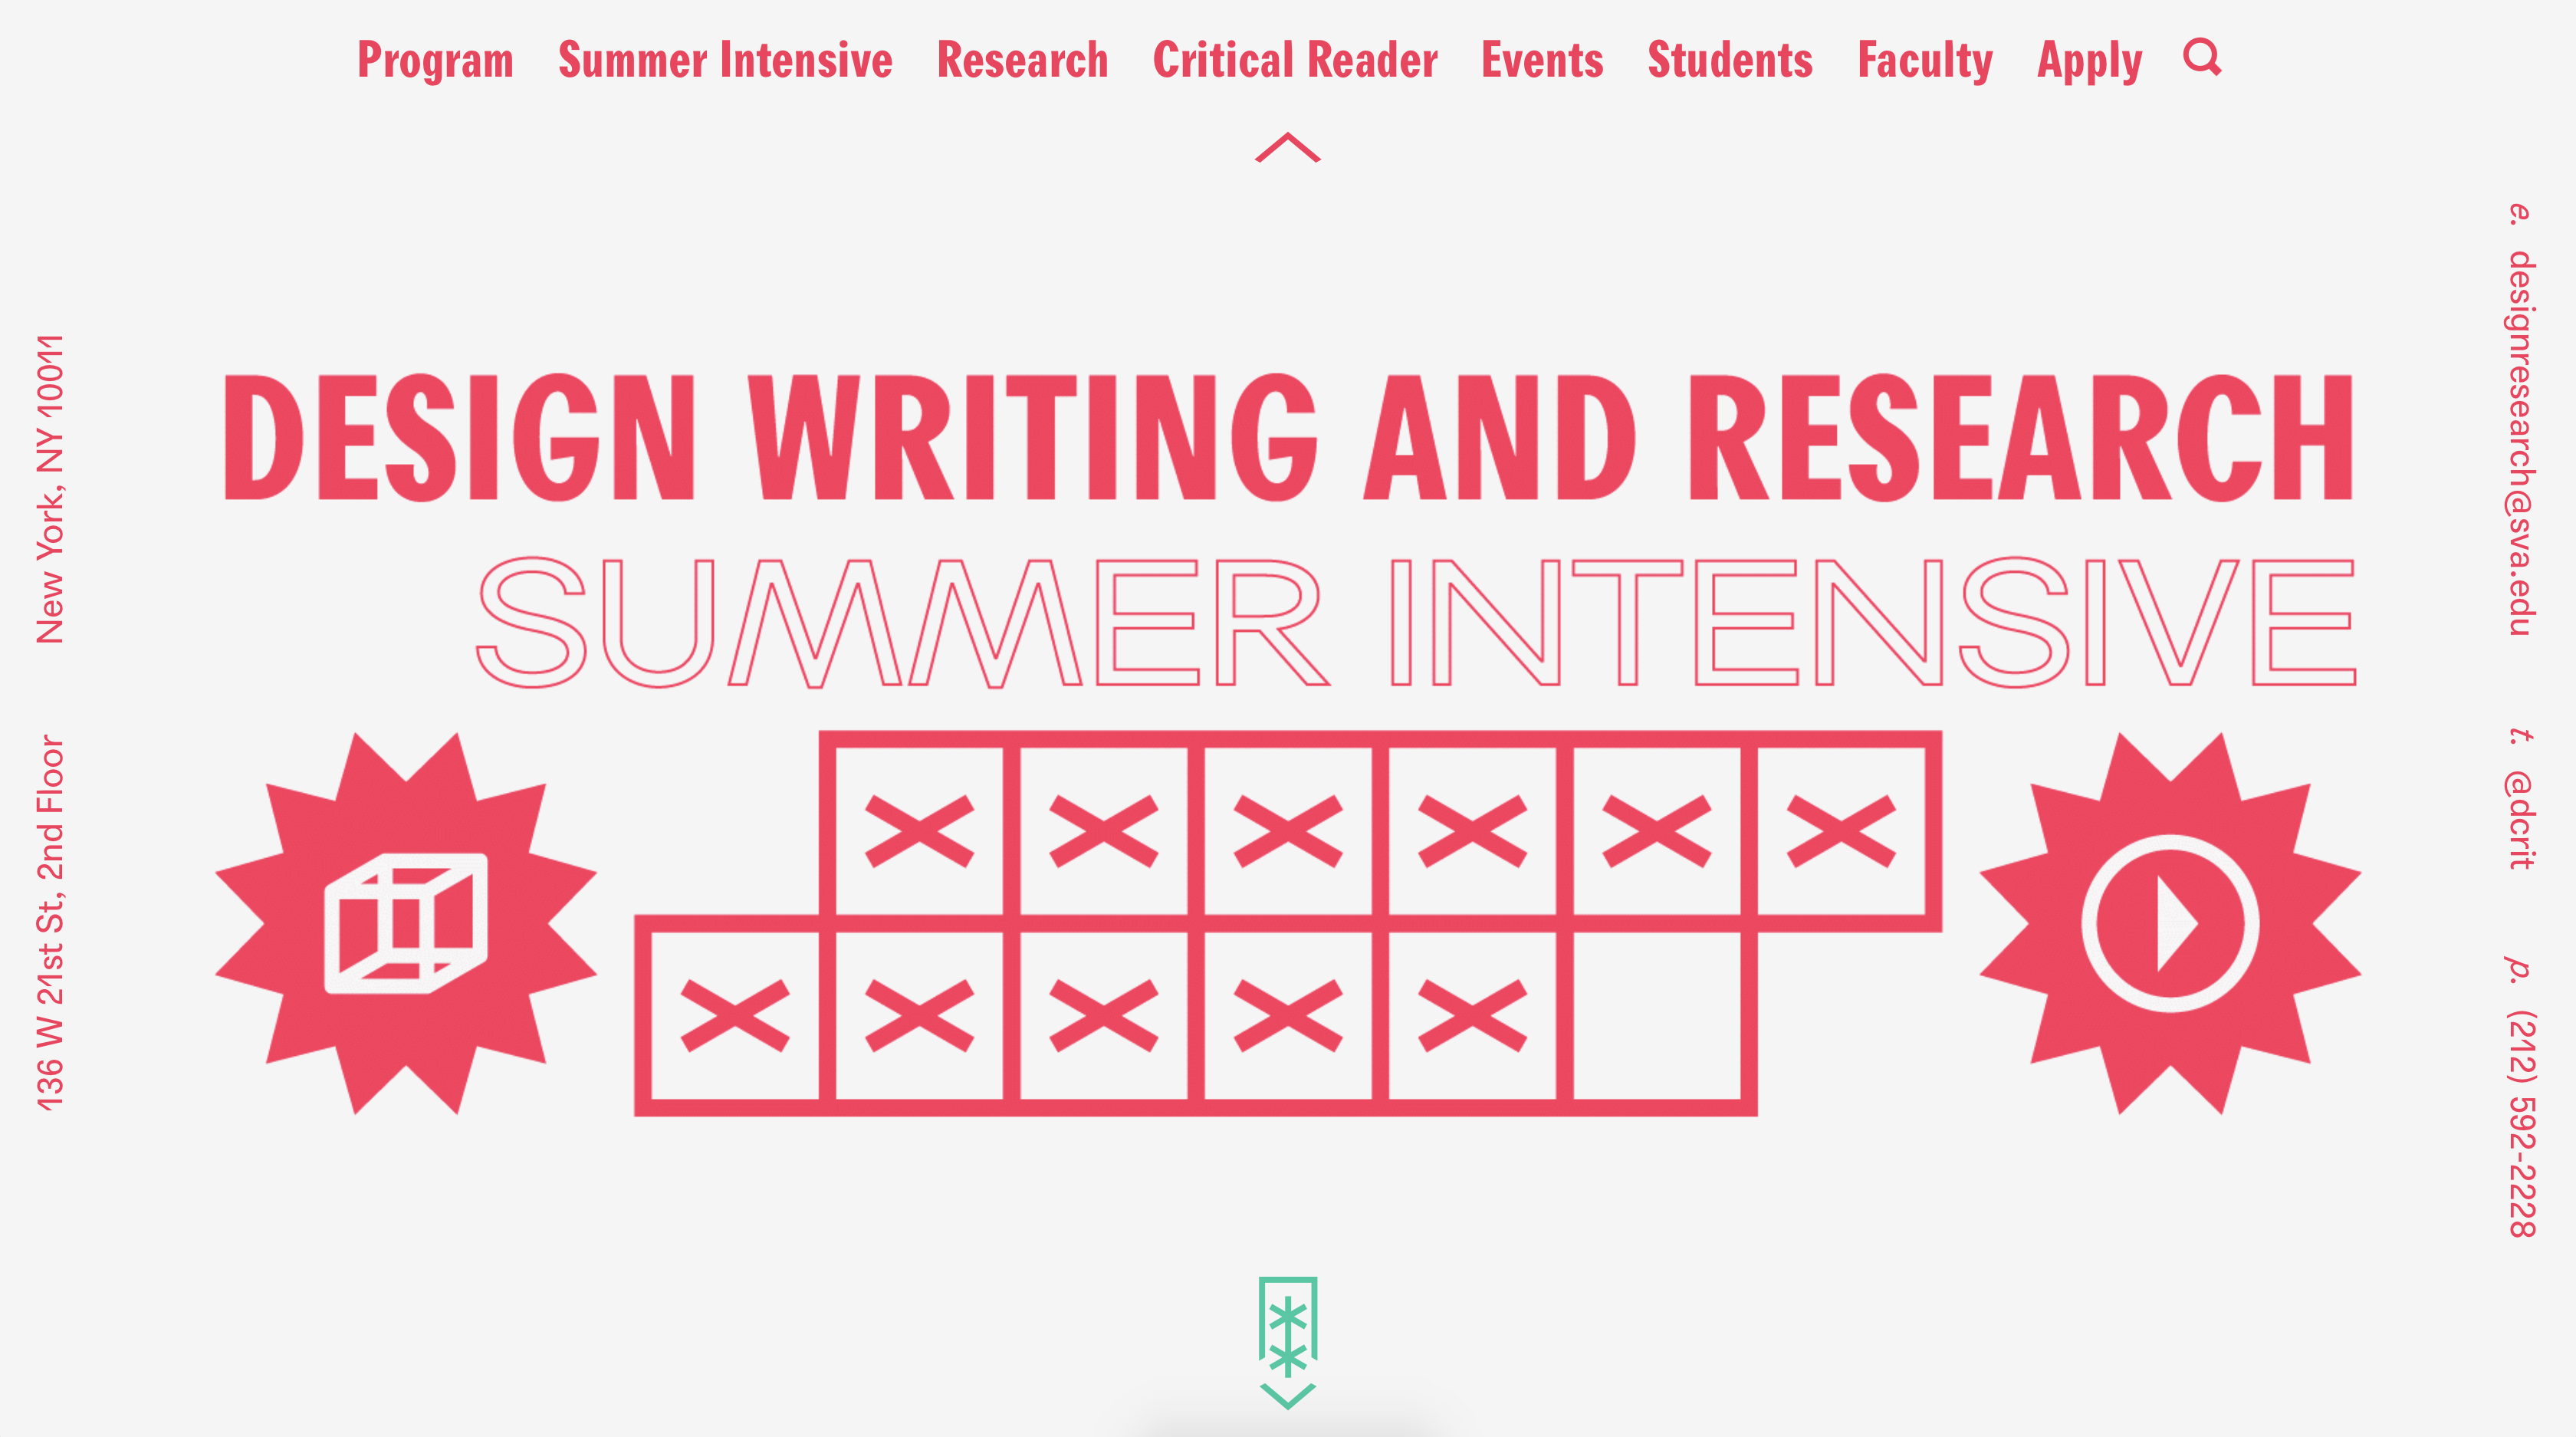 Design Writing and Research Summer Intensive